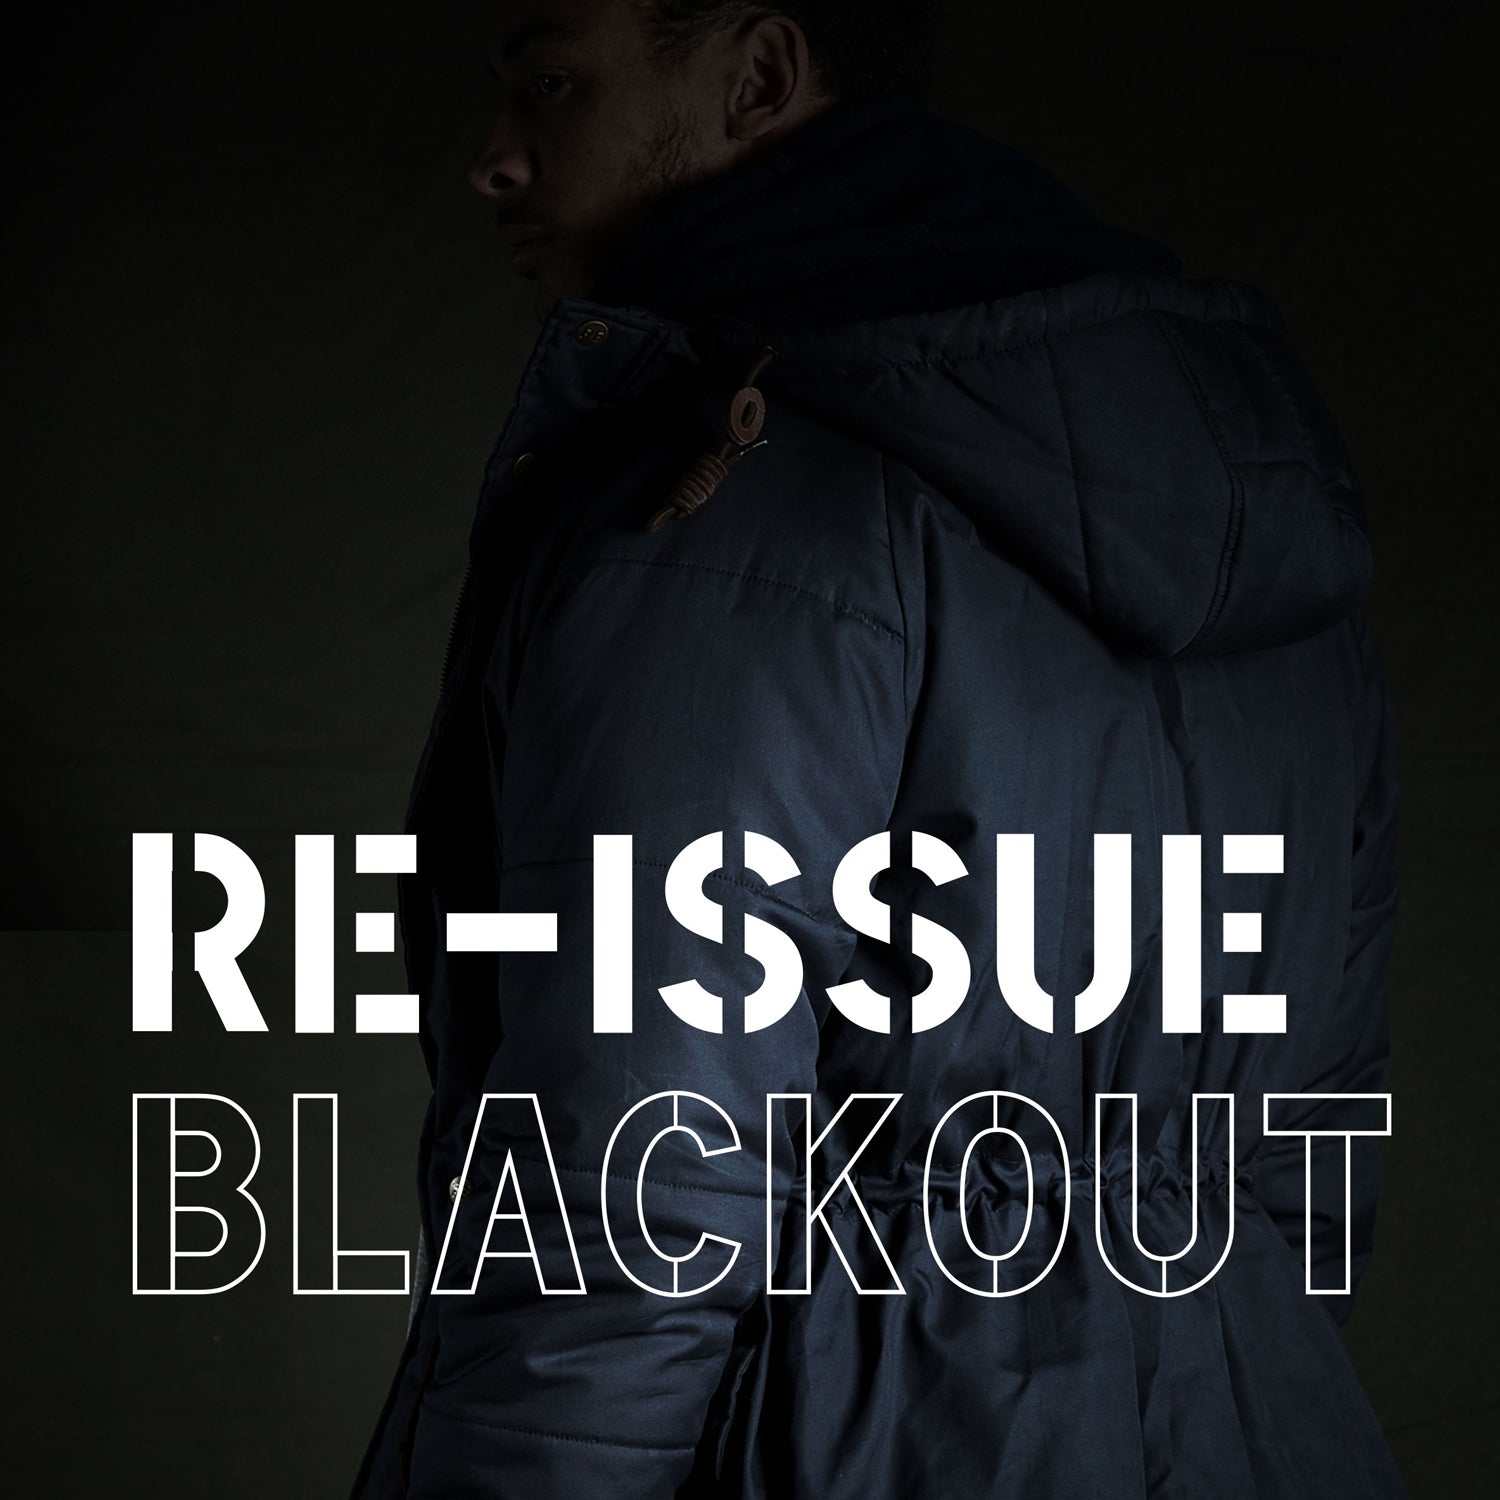 RE-ISSUE is back with BLACKOUT